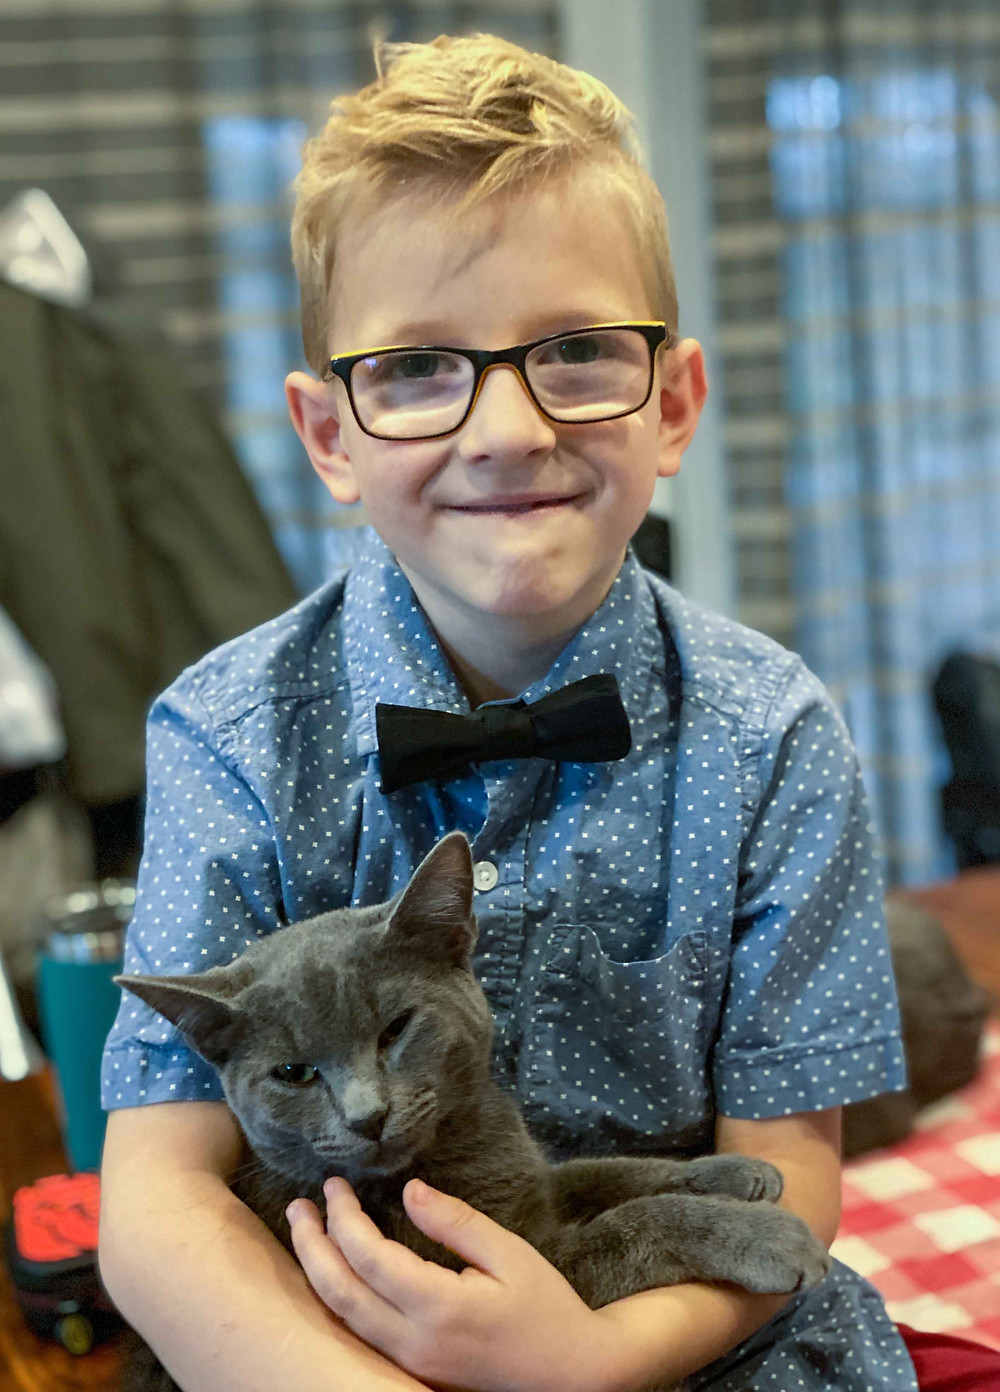 A picture of my son, Charles, with his cat.